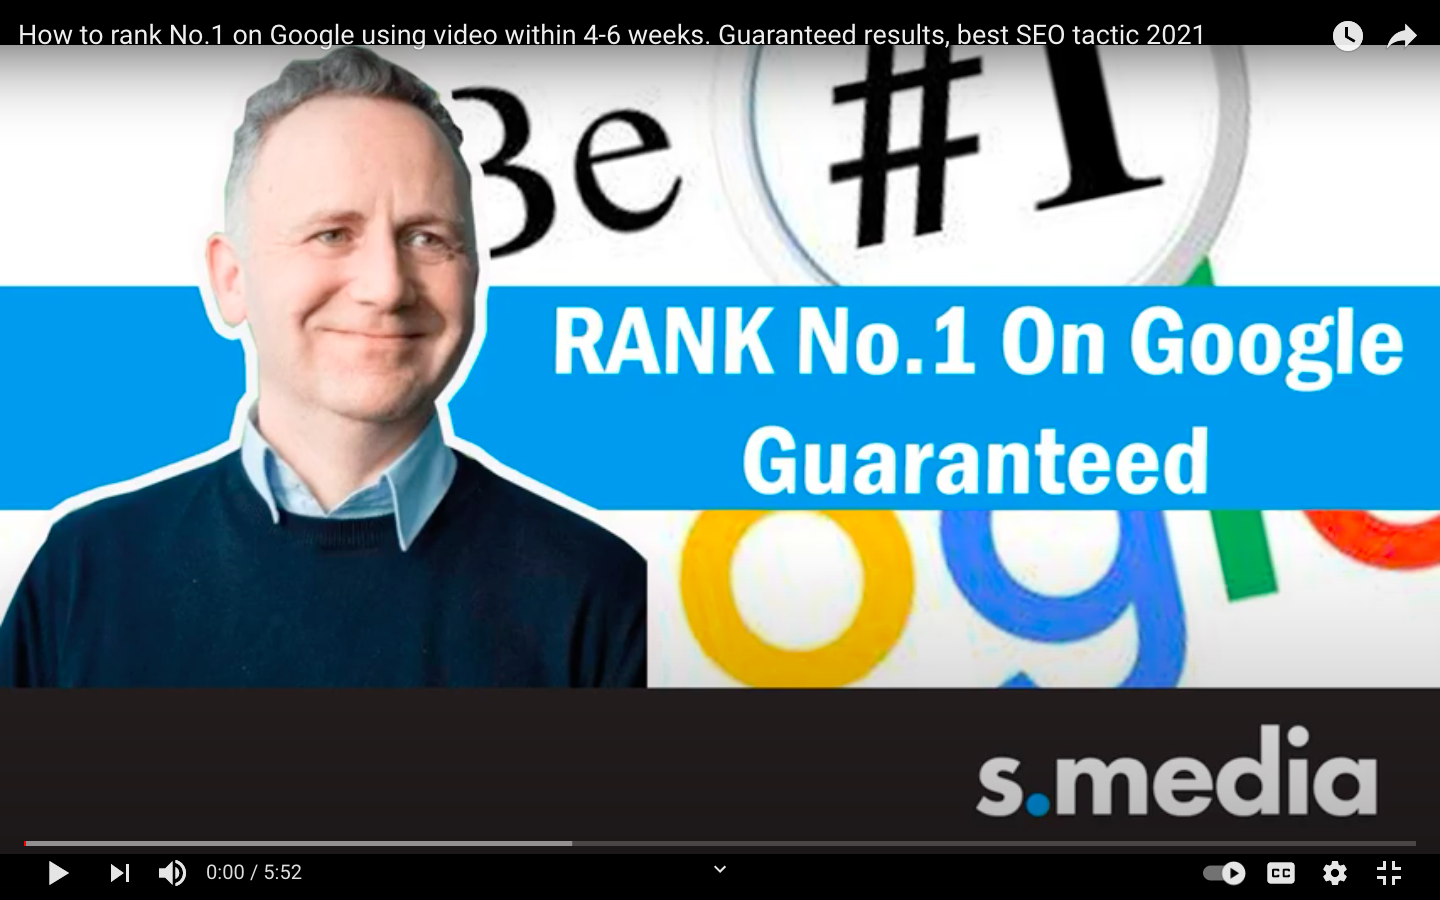 How to rank no.1 on Google using video!